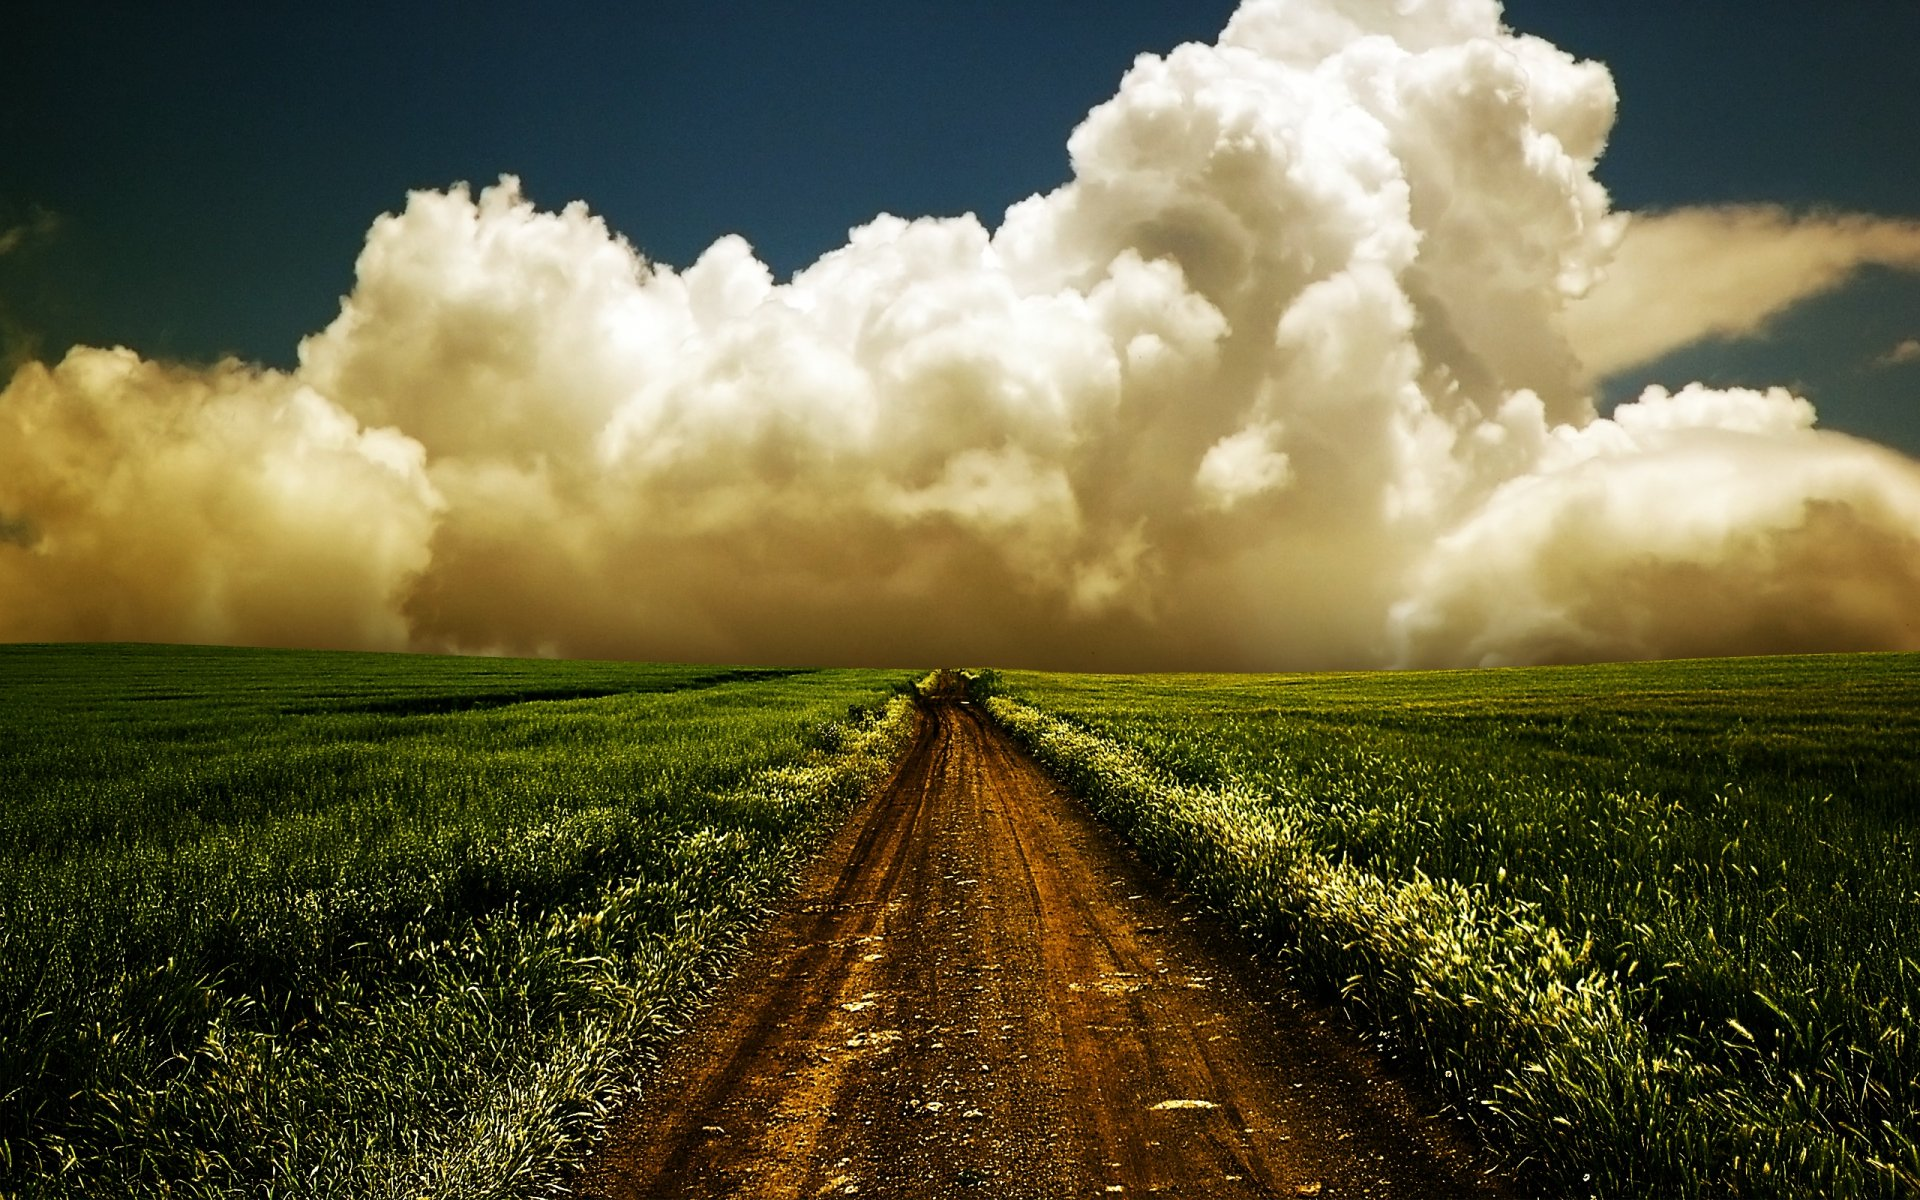 ws_Fields_Dirty_Road_&_Big_Clouds_1920x1200